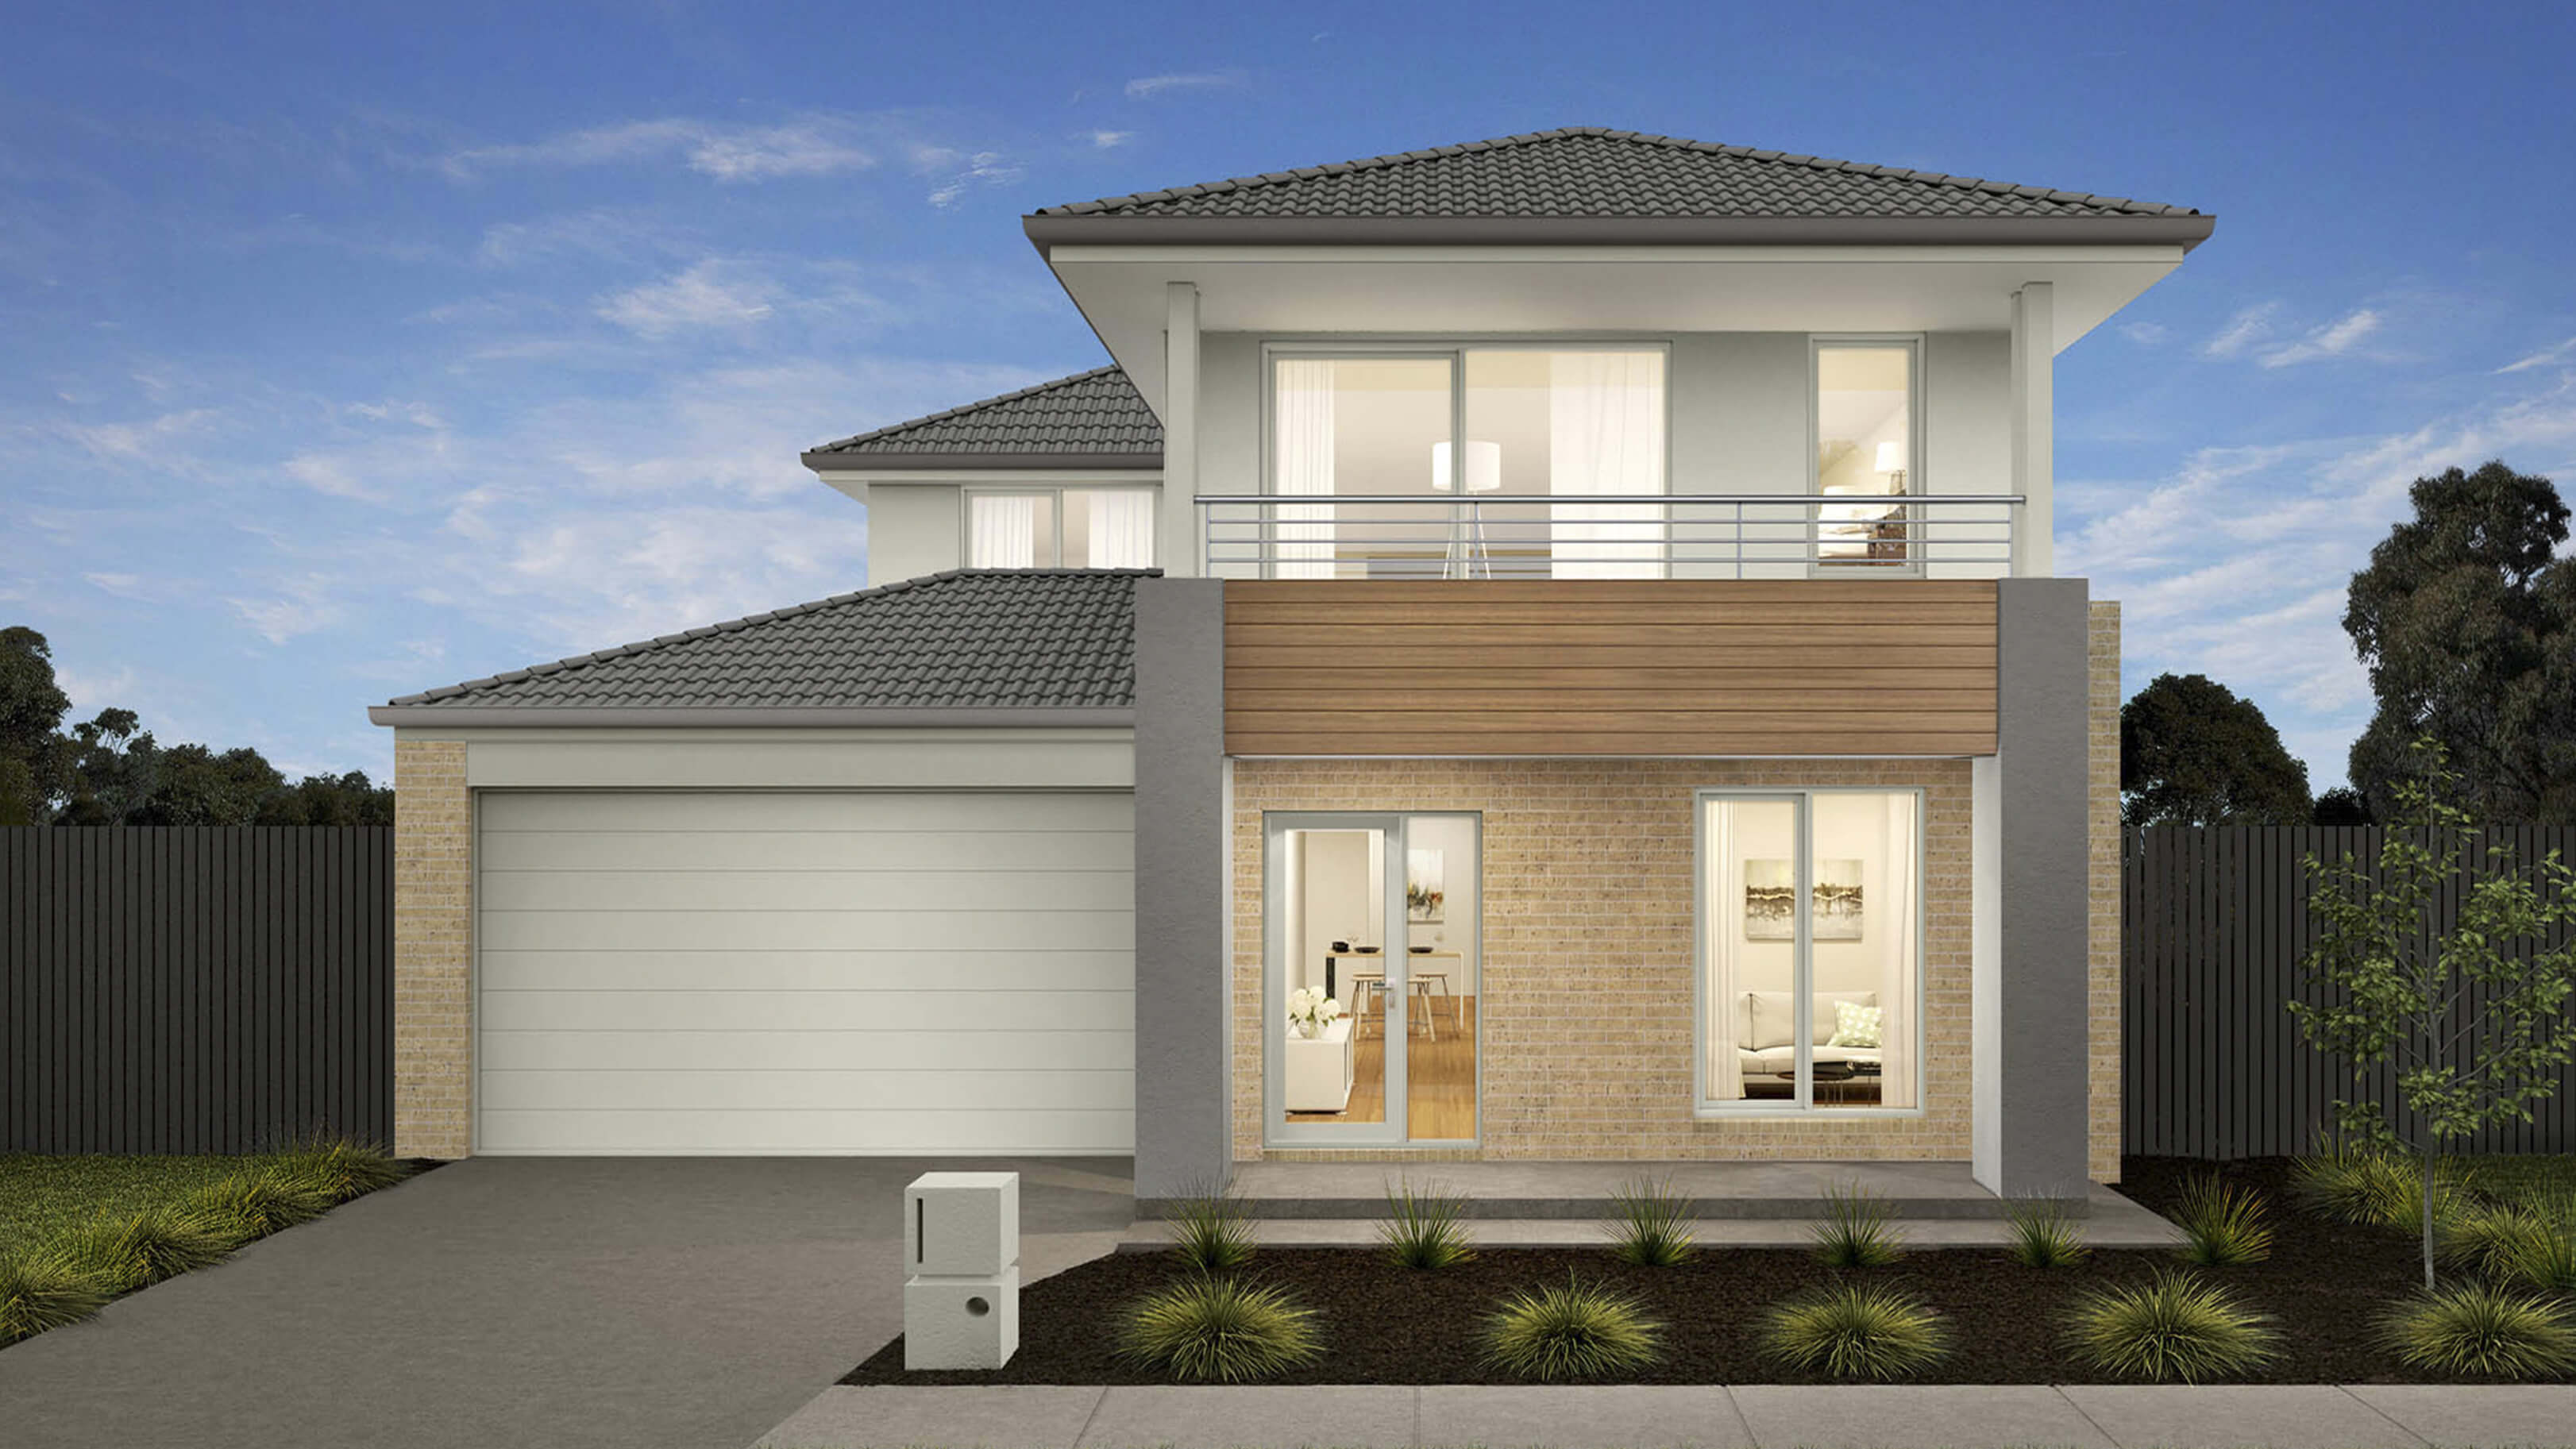 EASYLIVING SHERWOOD MANCHESTER 12.5 Exterior Image 2